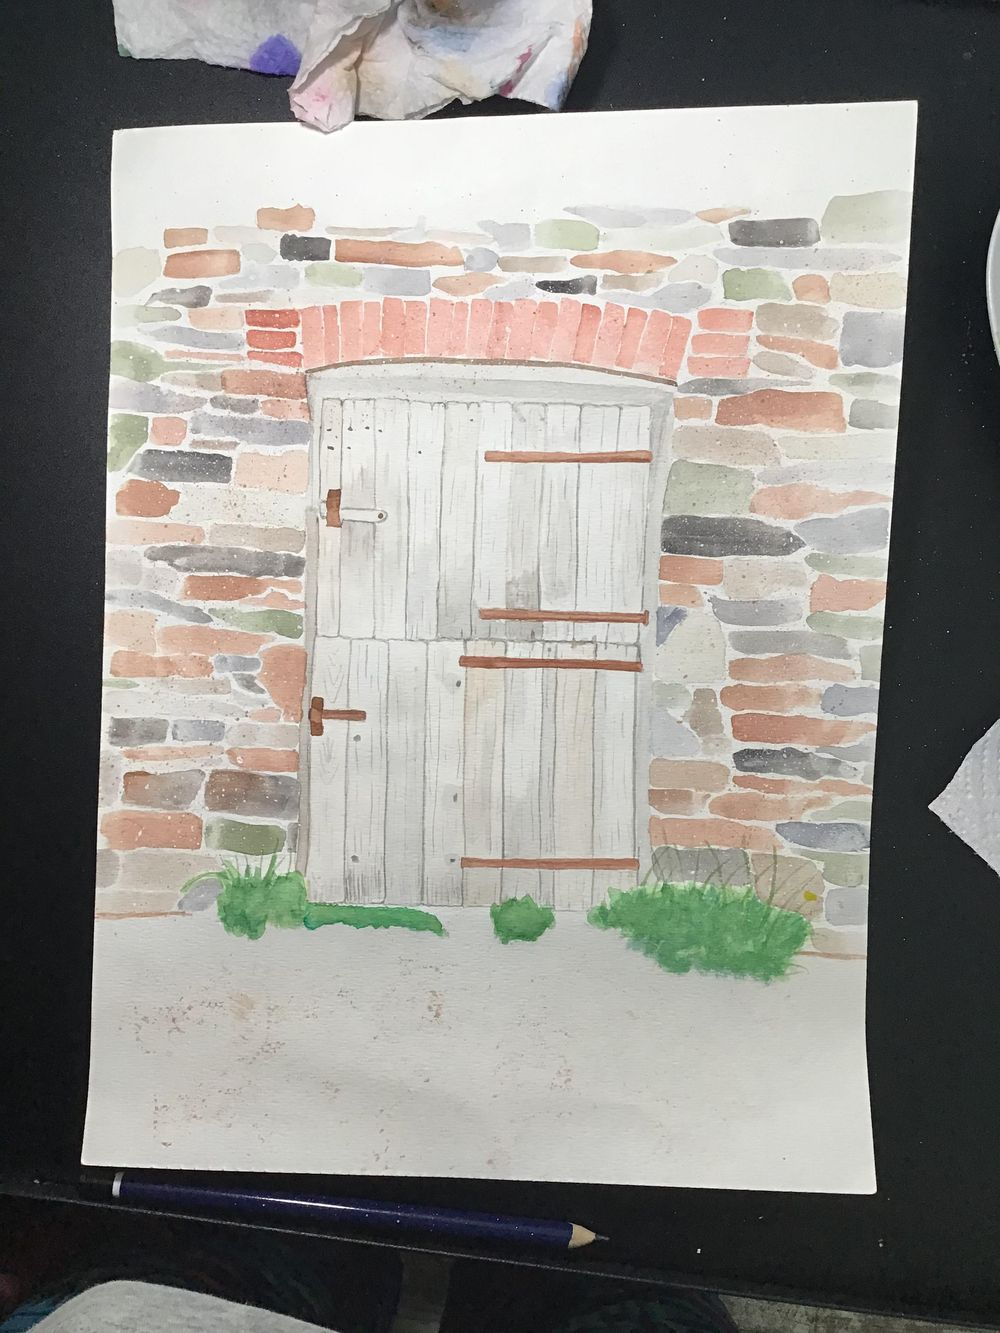 Doorway to somewhere - image 2 - student project